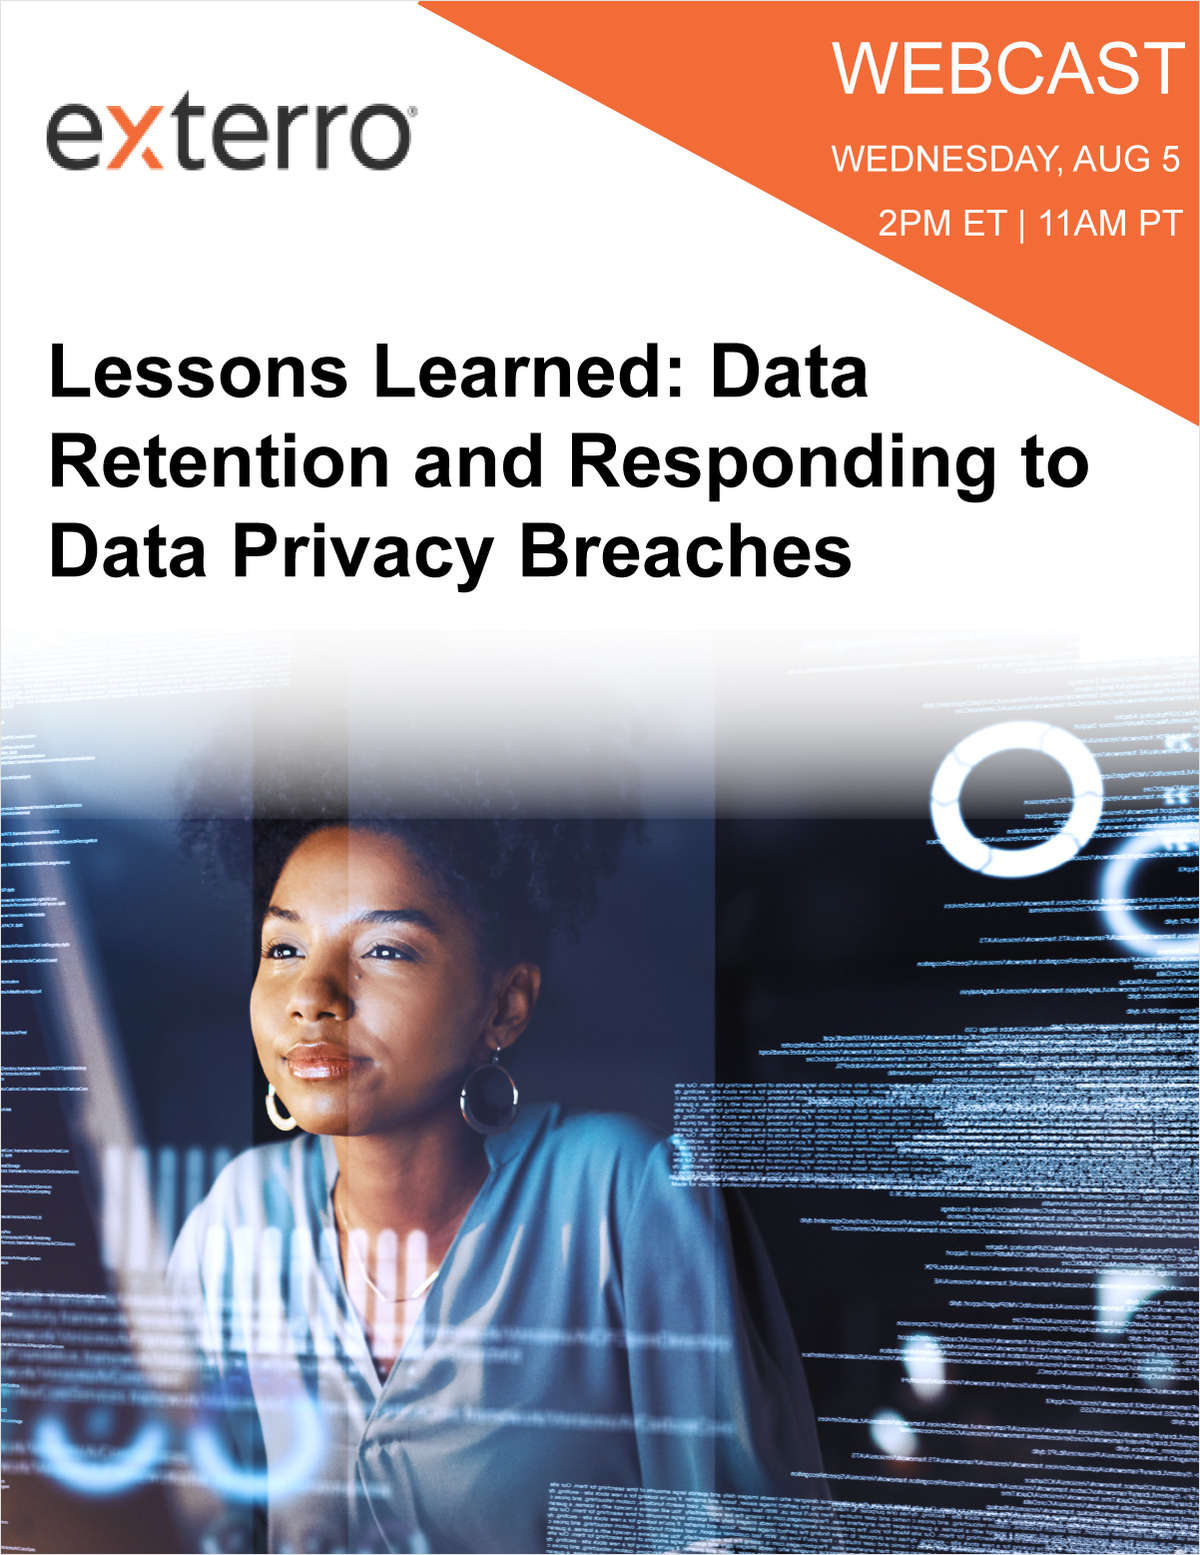 Lessons Learned: Data Retention and Responding to Data Privacy Breaches